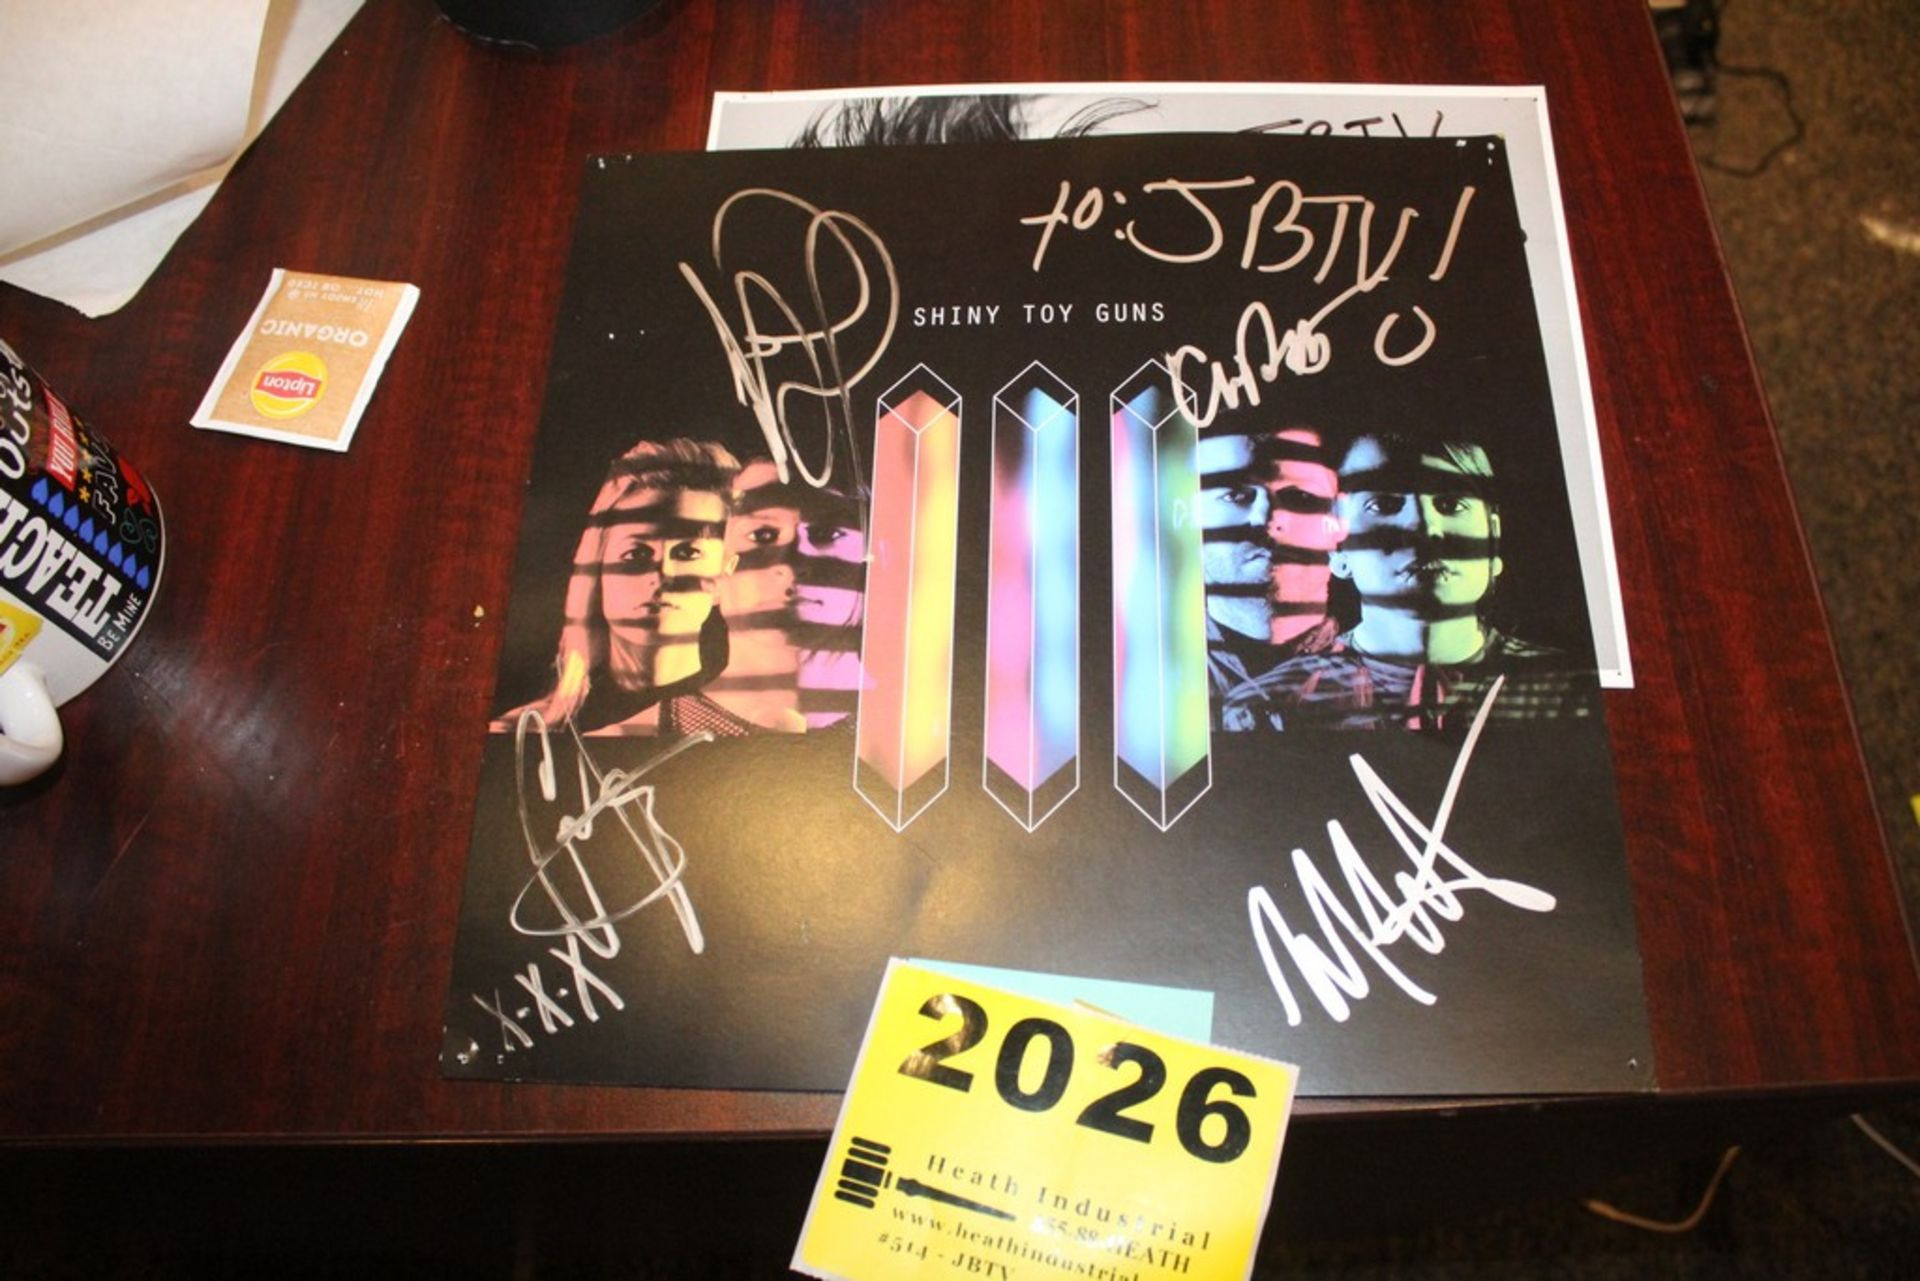 Lot 2026 - Shiny Toy Guns Signed Poster